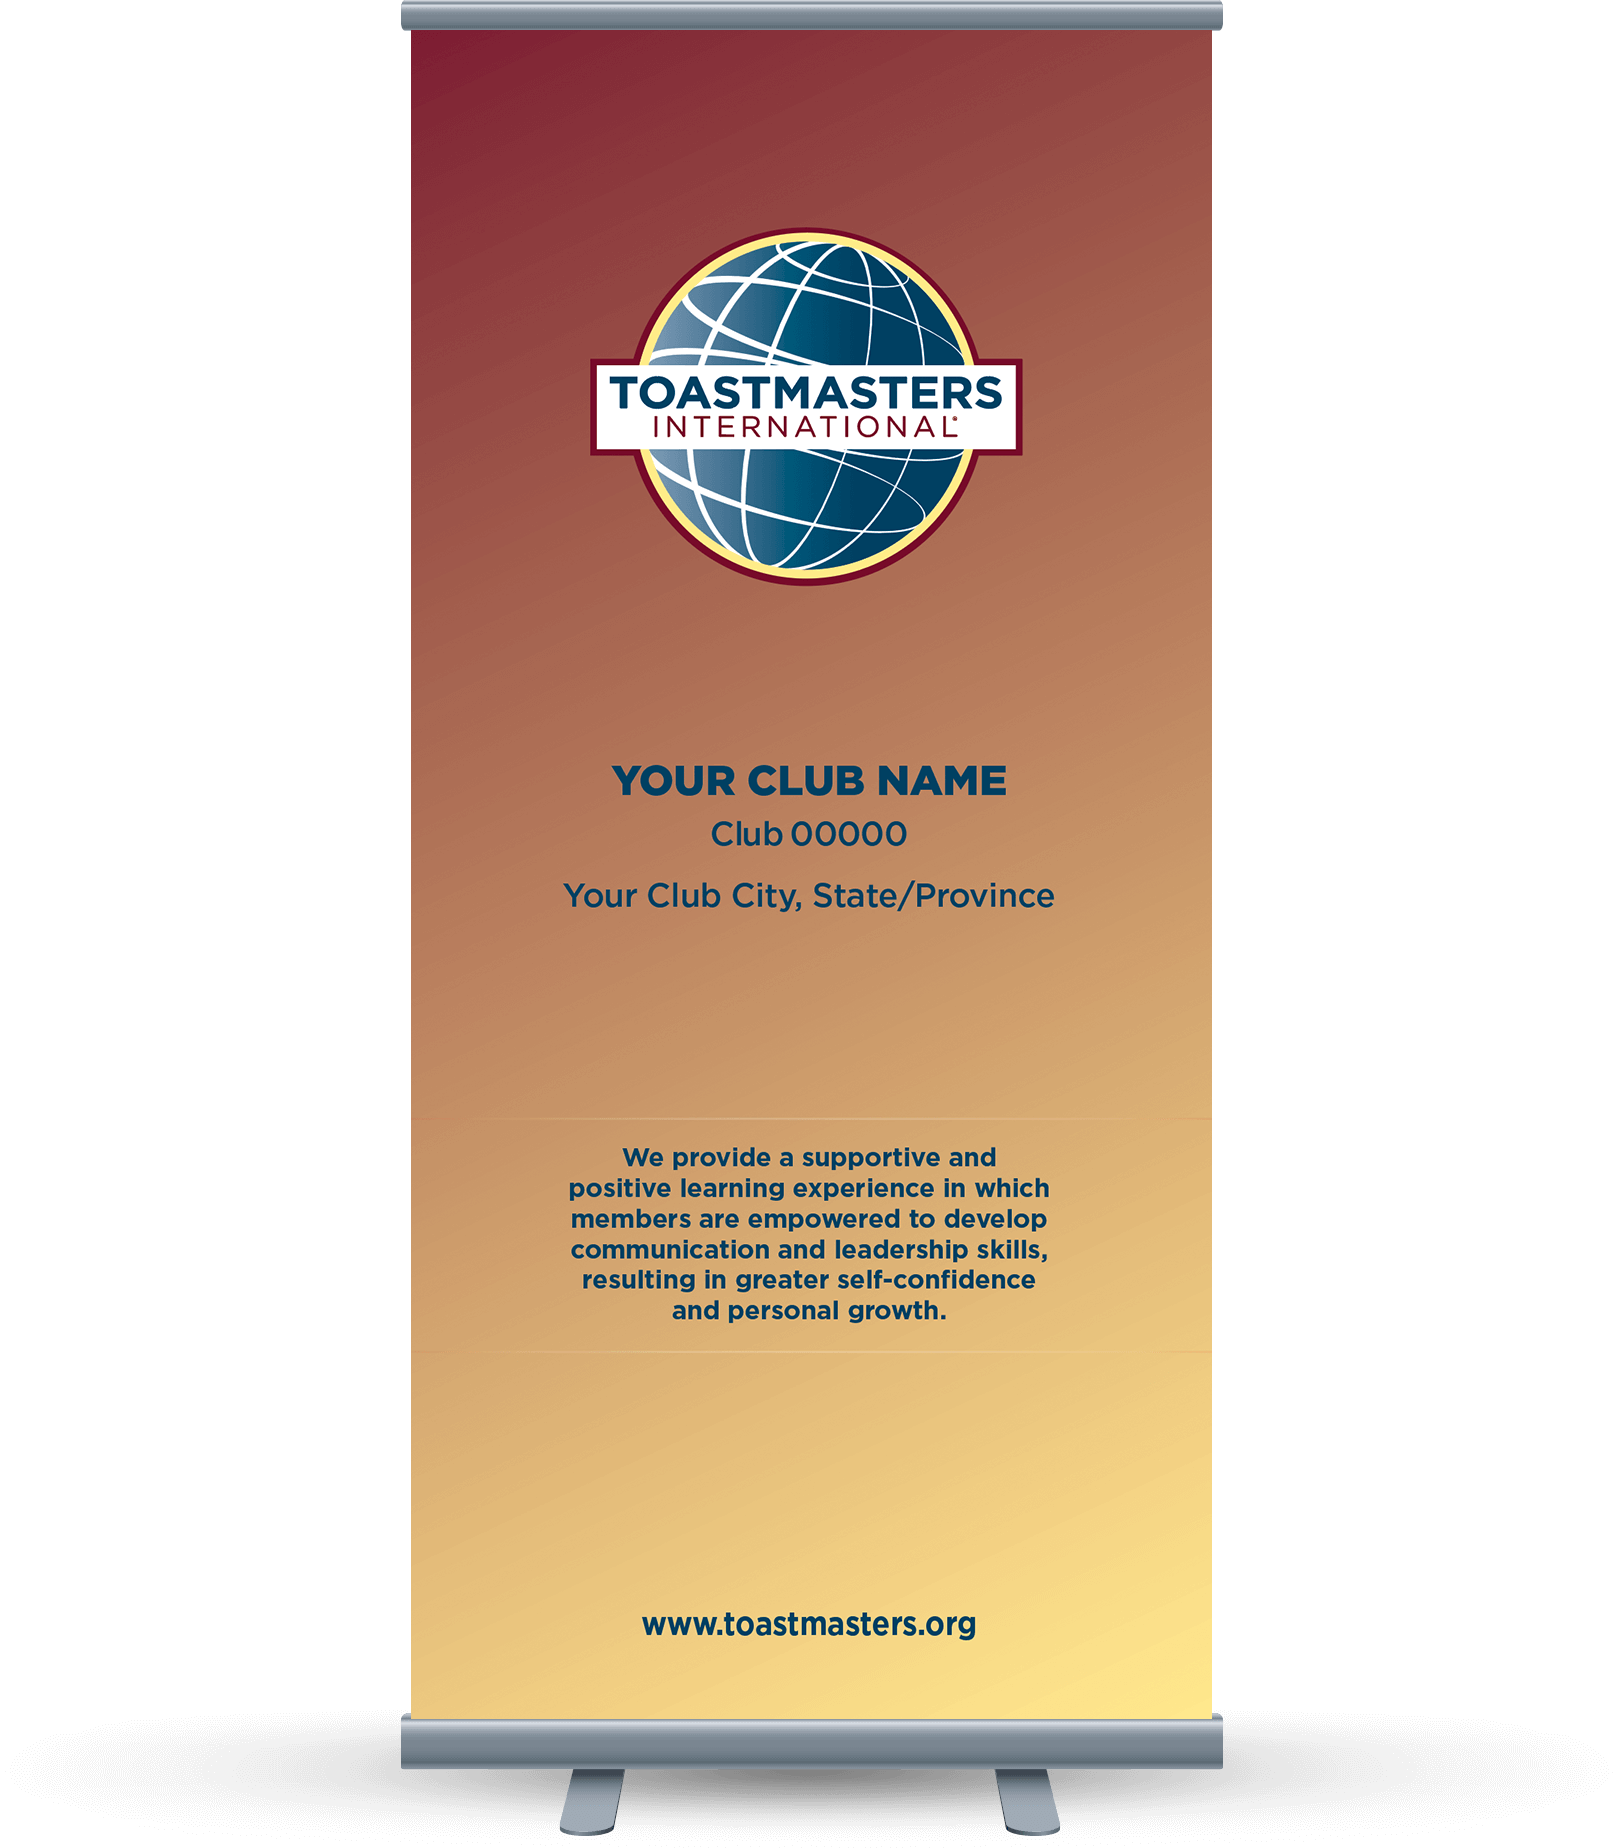 Custom Club Banner with yellow background, globe logo and club mission statement